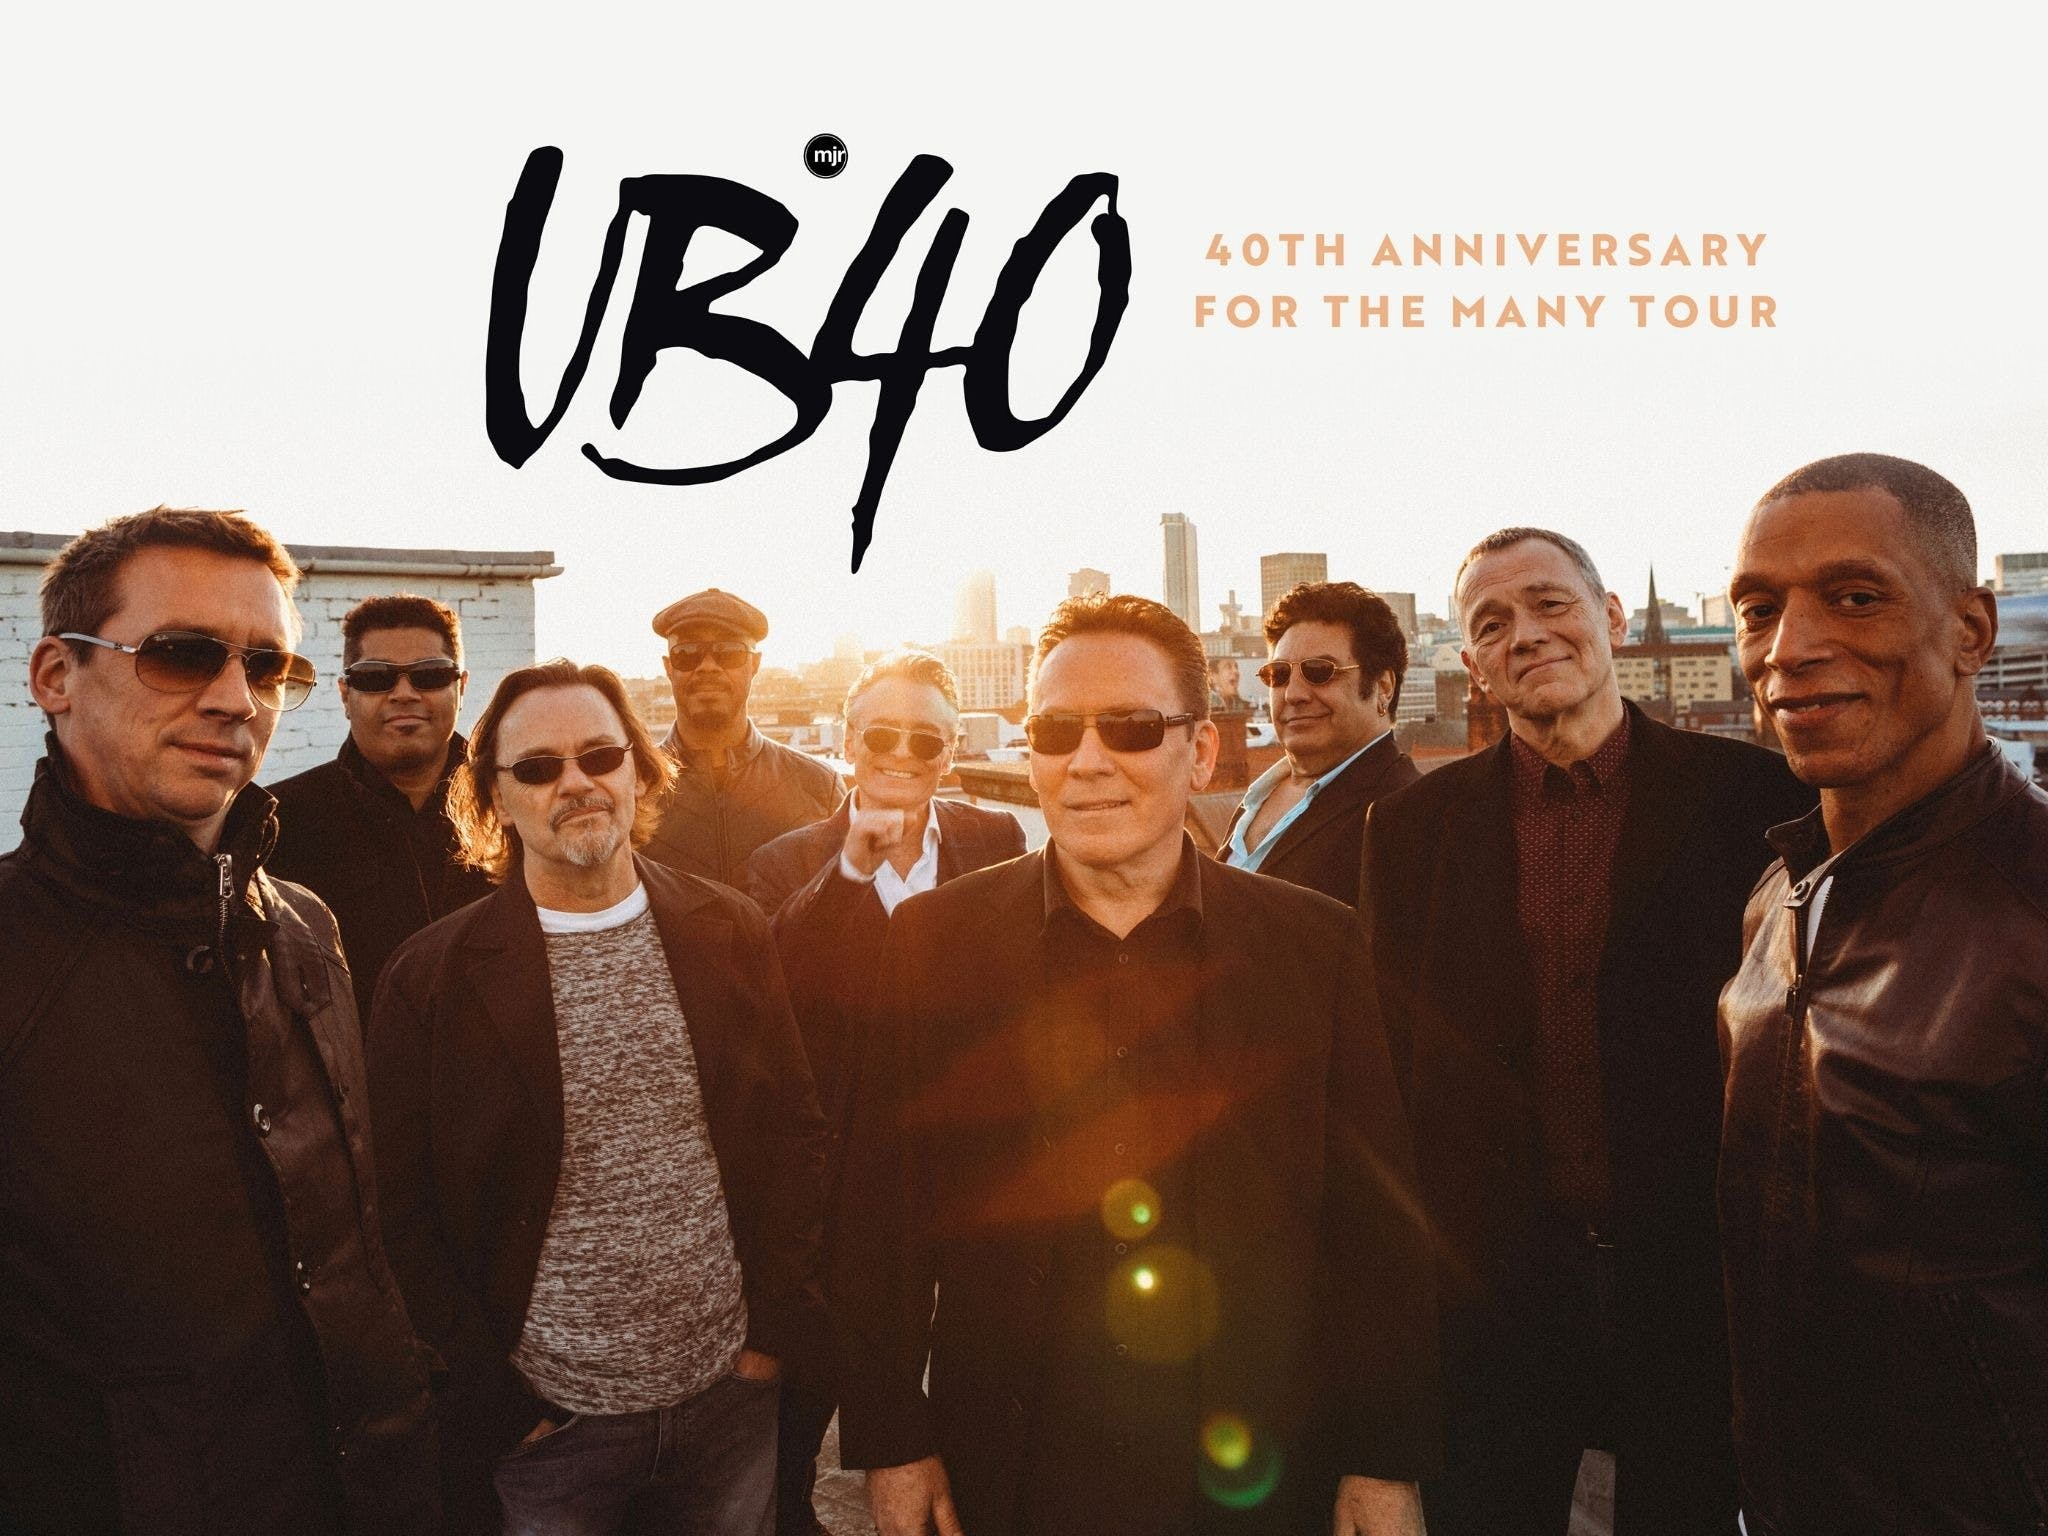 UB40 40th Anniversary Tour - Accommodation in Surfers Paradise